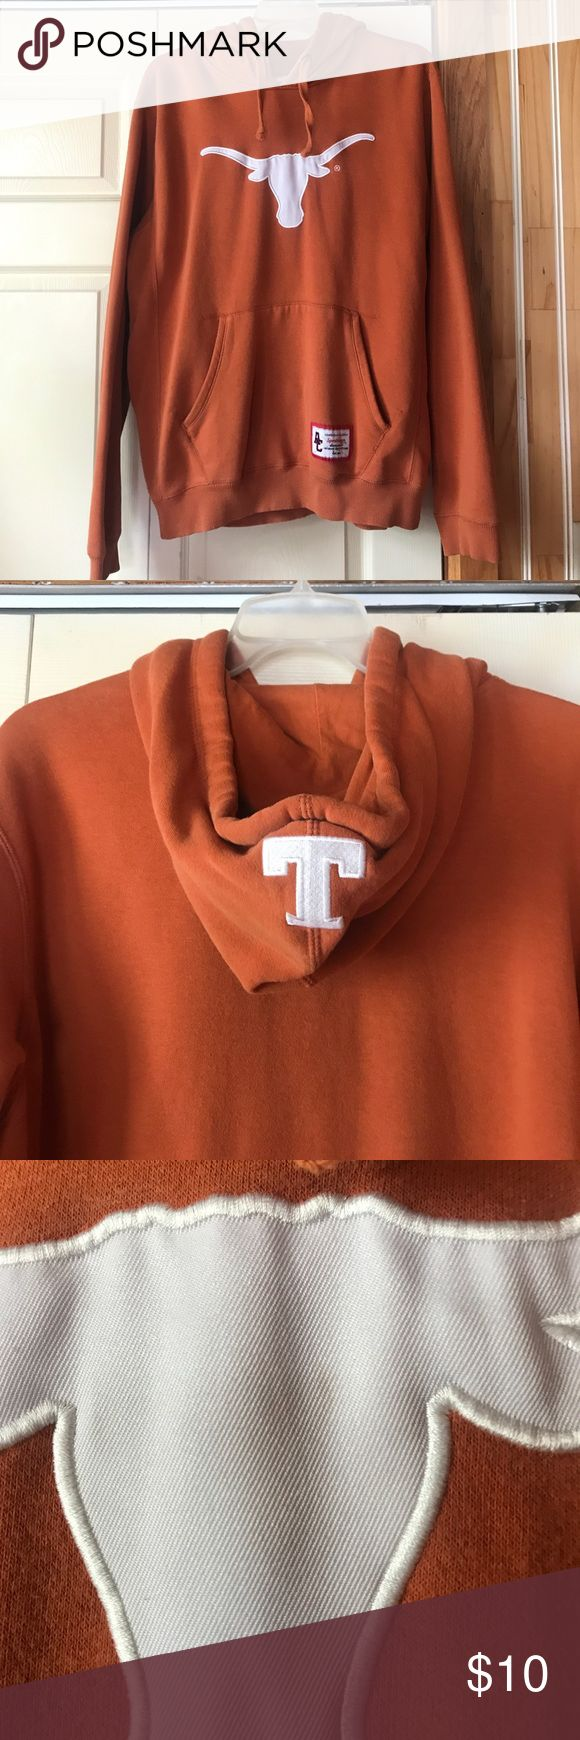 Texas Longhorns Hoody, Men's Size Large Texas Longhorns hoodie, Men's Size Large, Orange, used condition with some flaws (see pictures) still a lot of life left!!! Comes from smoke free home Shirts Sweatshirts & Hoodies